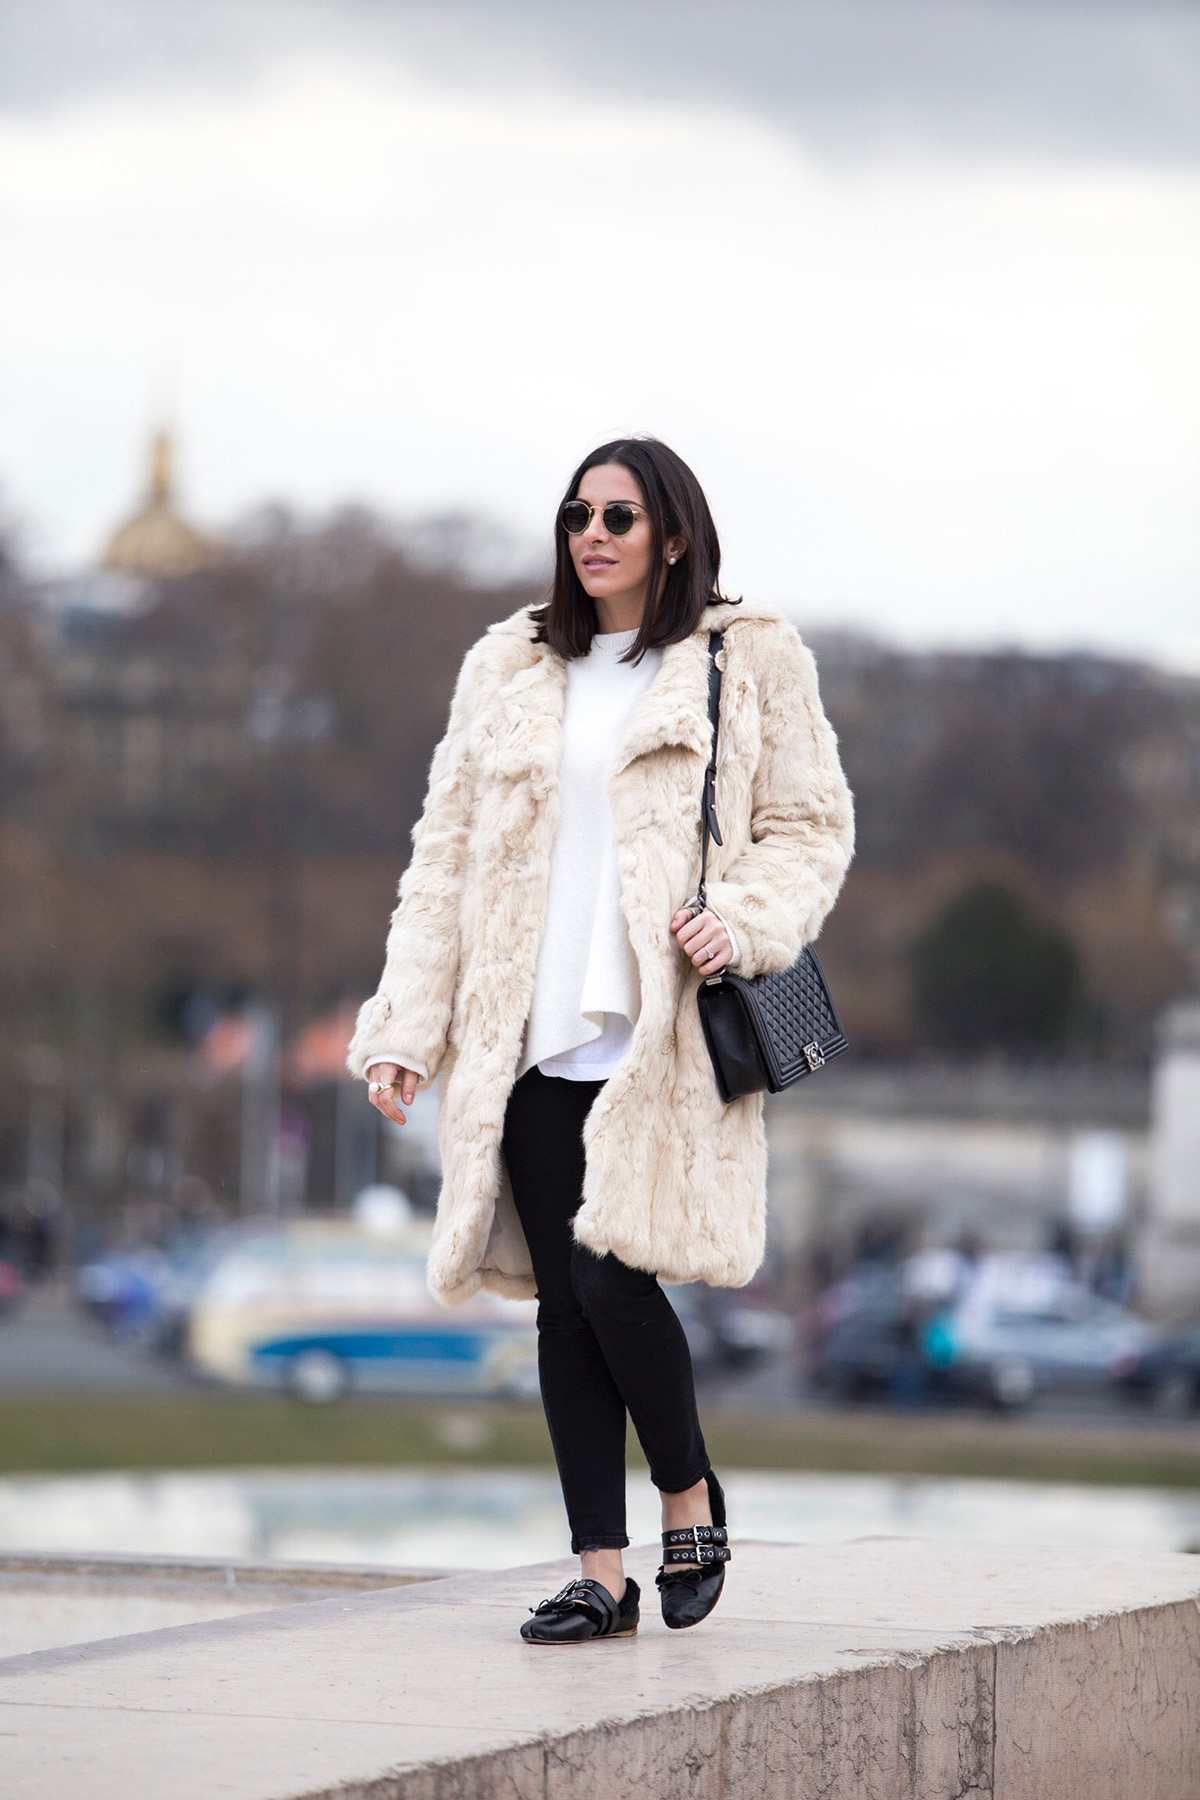 Stella Asteria, Fashion & Lifestyle blogger wearing white fur coat and Chanel boy bag